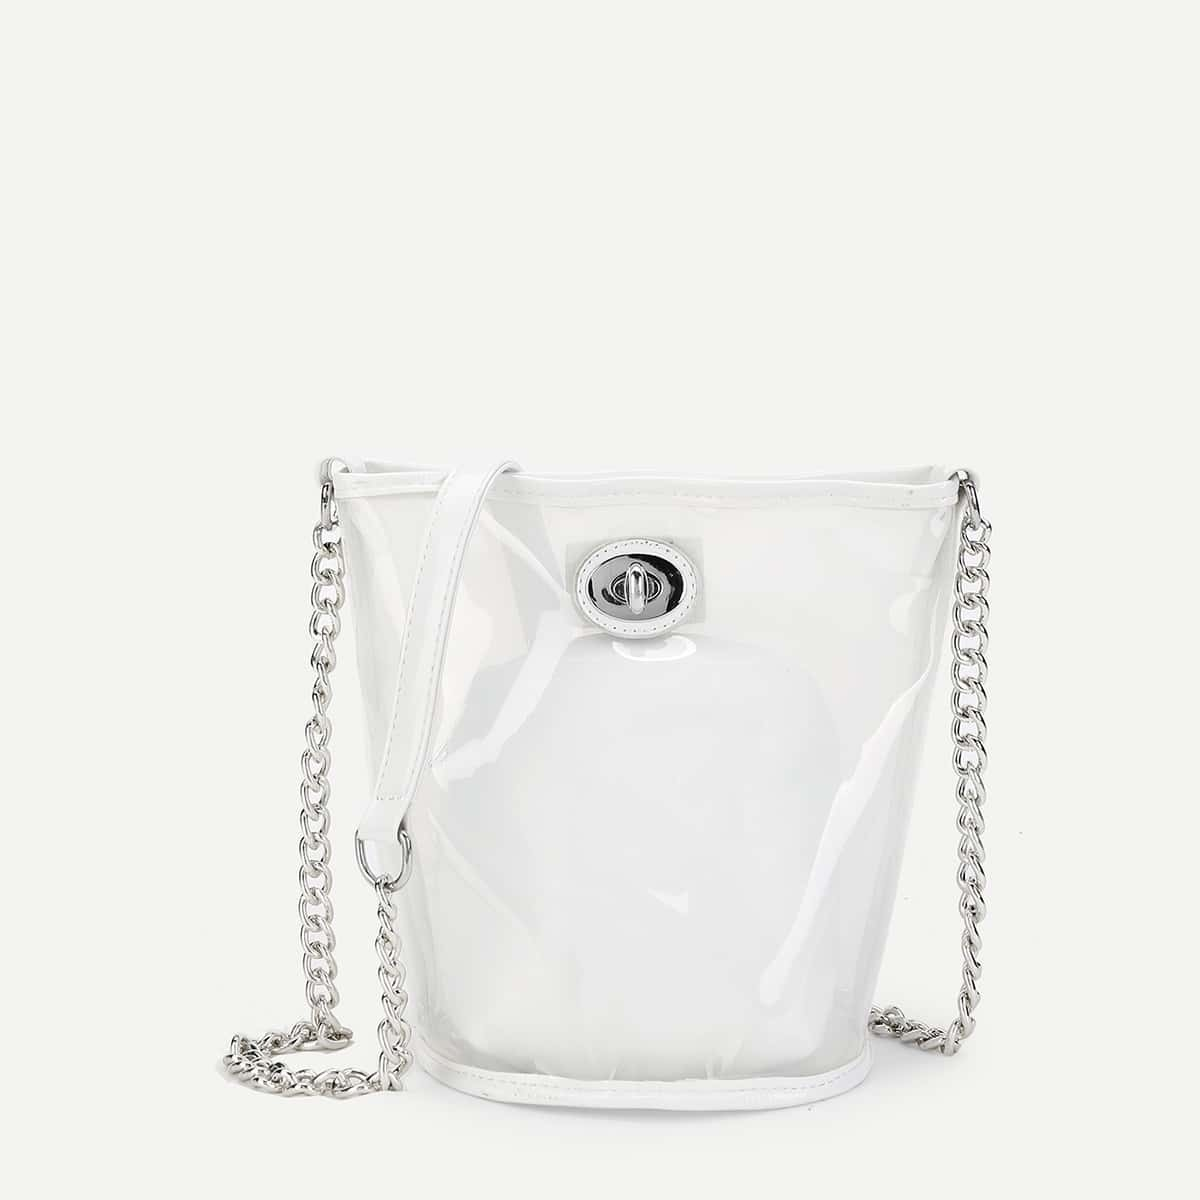 - PVC Chain Bag With Inner Pouch